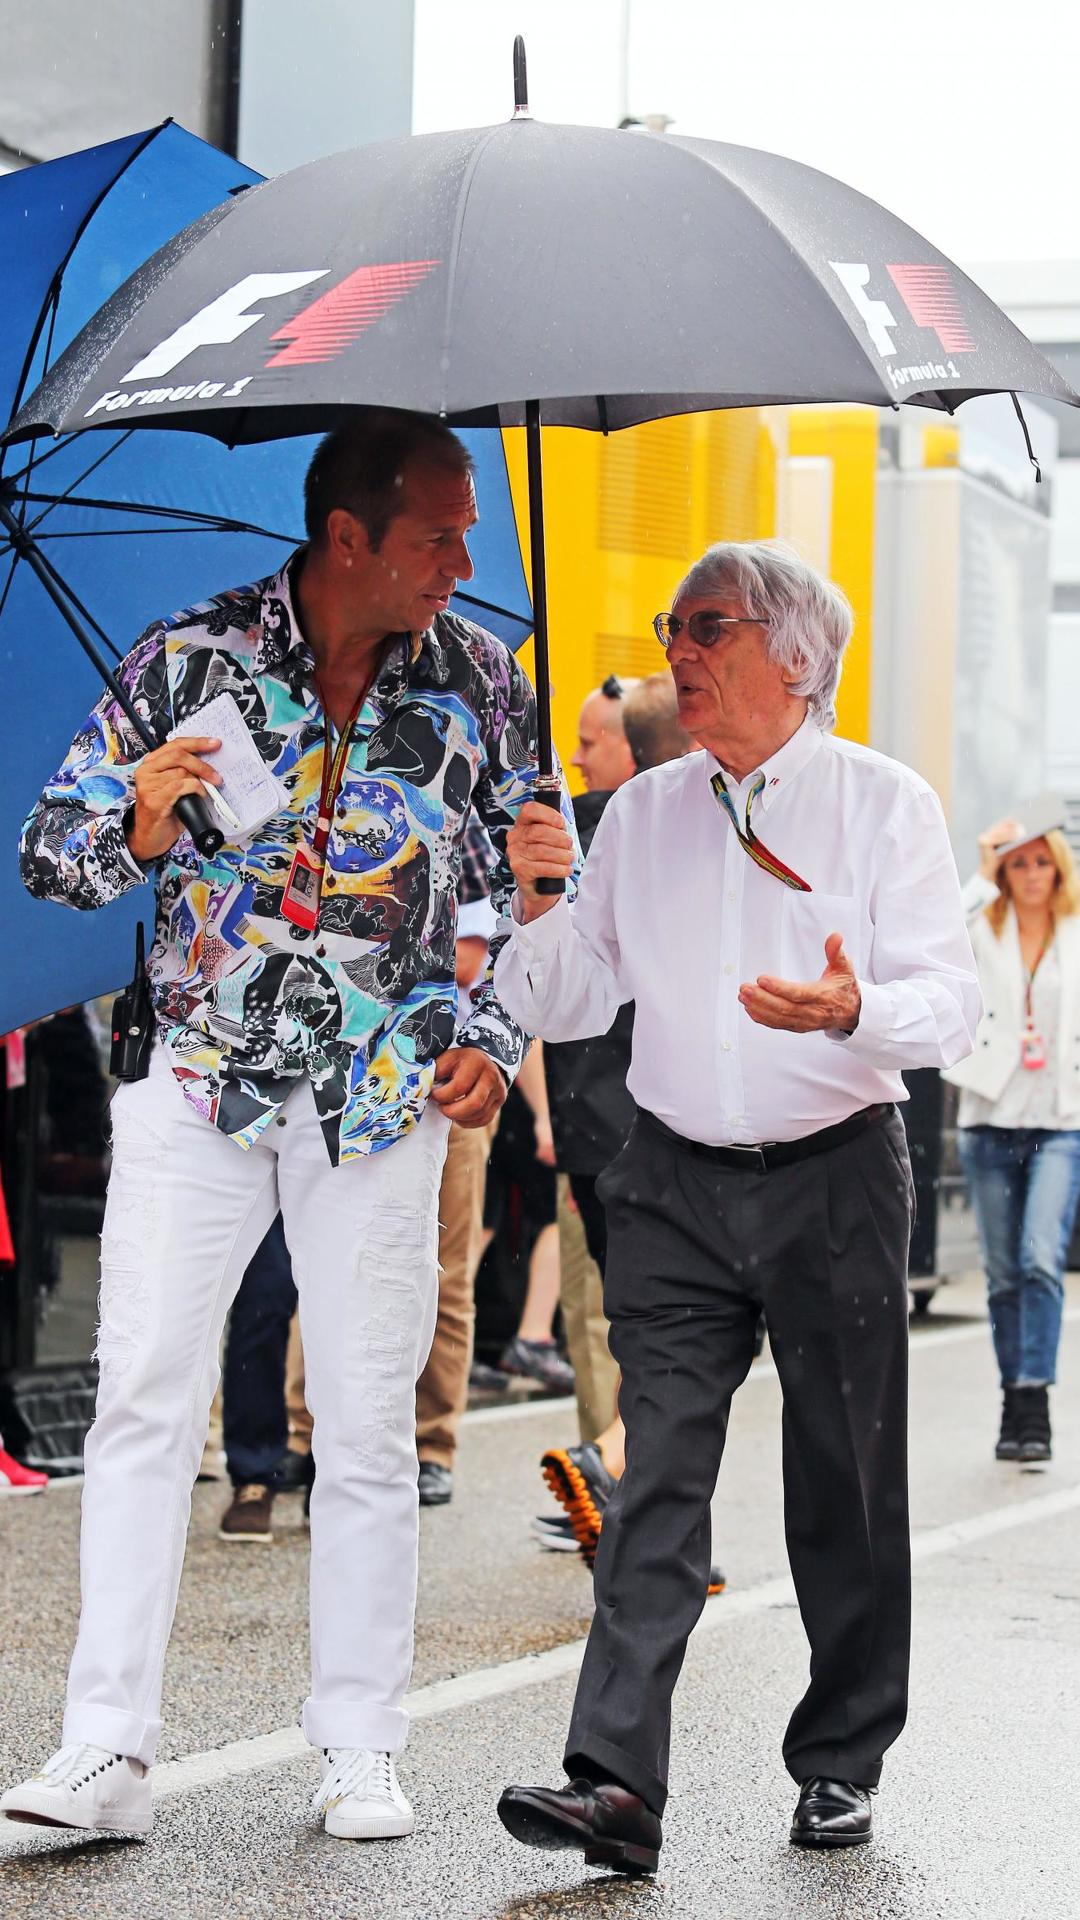 Ecclestone on holiday after paying $100m settlement